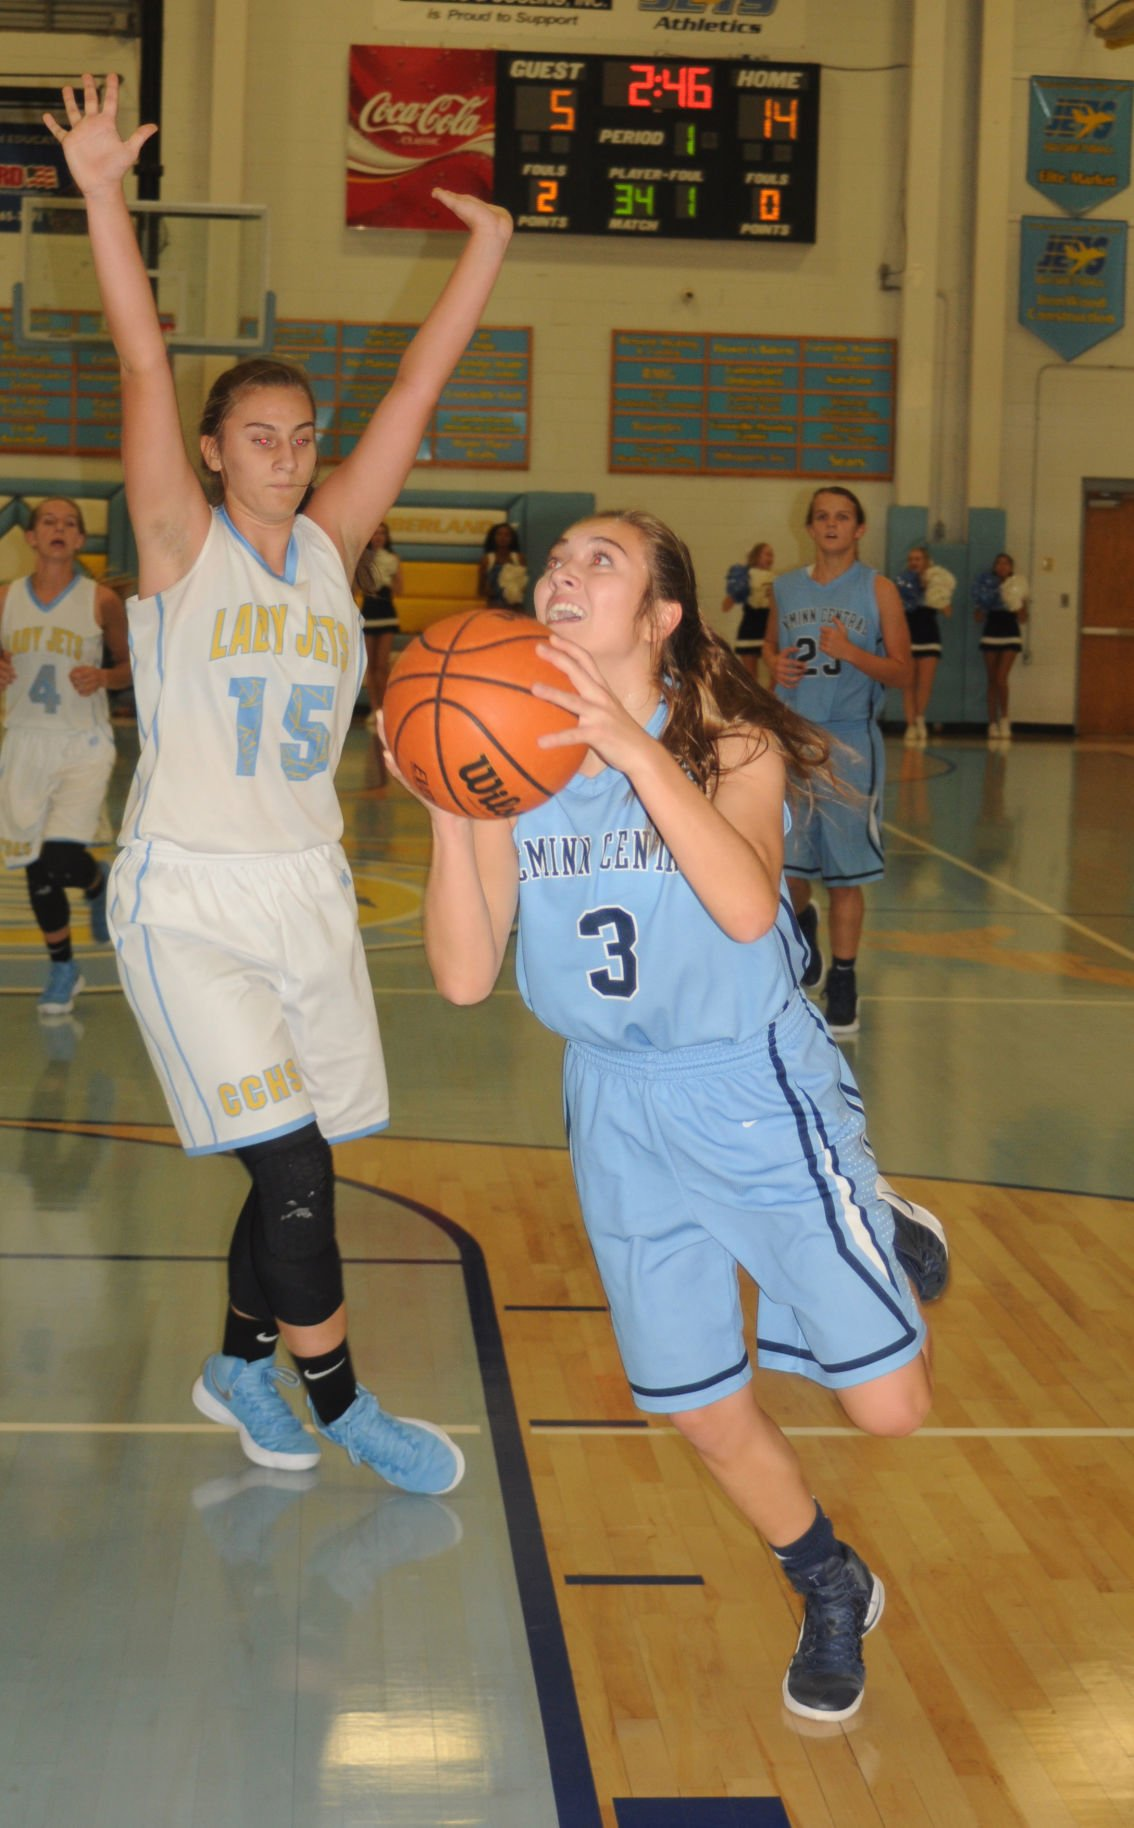 PROMO ONLY - Central girls basketball